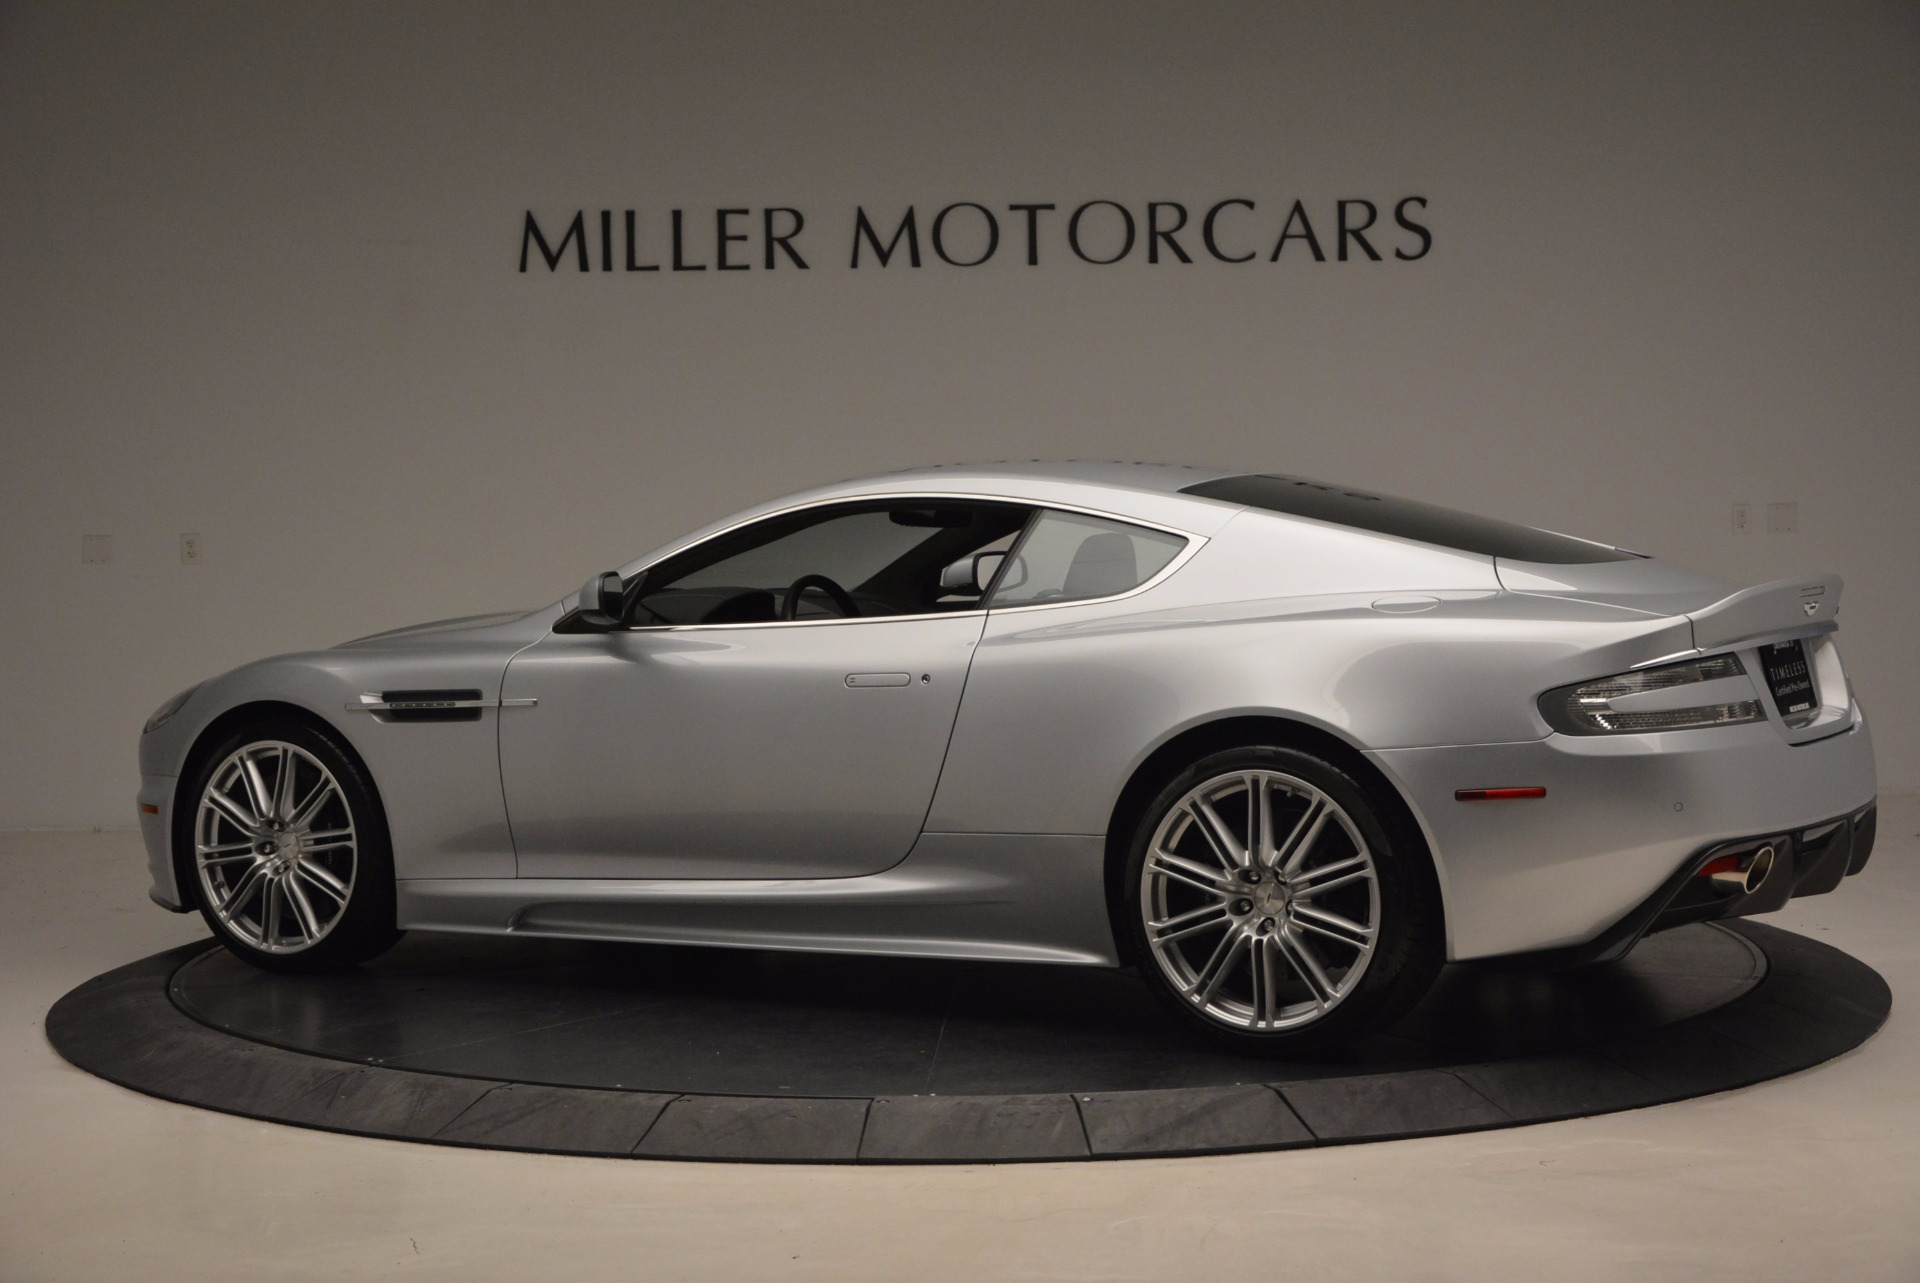 Used 2009 Aston Martin DBS  For Sale In Westport, CT 1415_p4